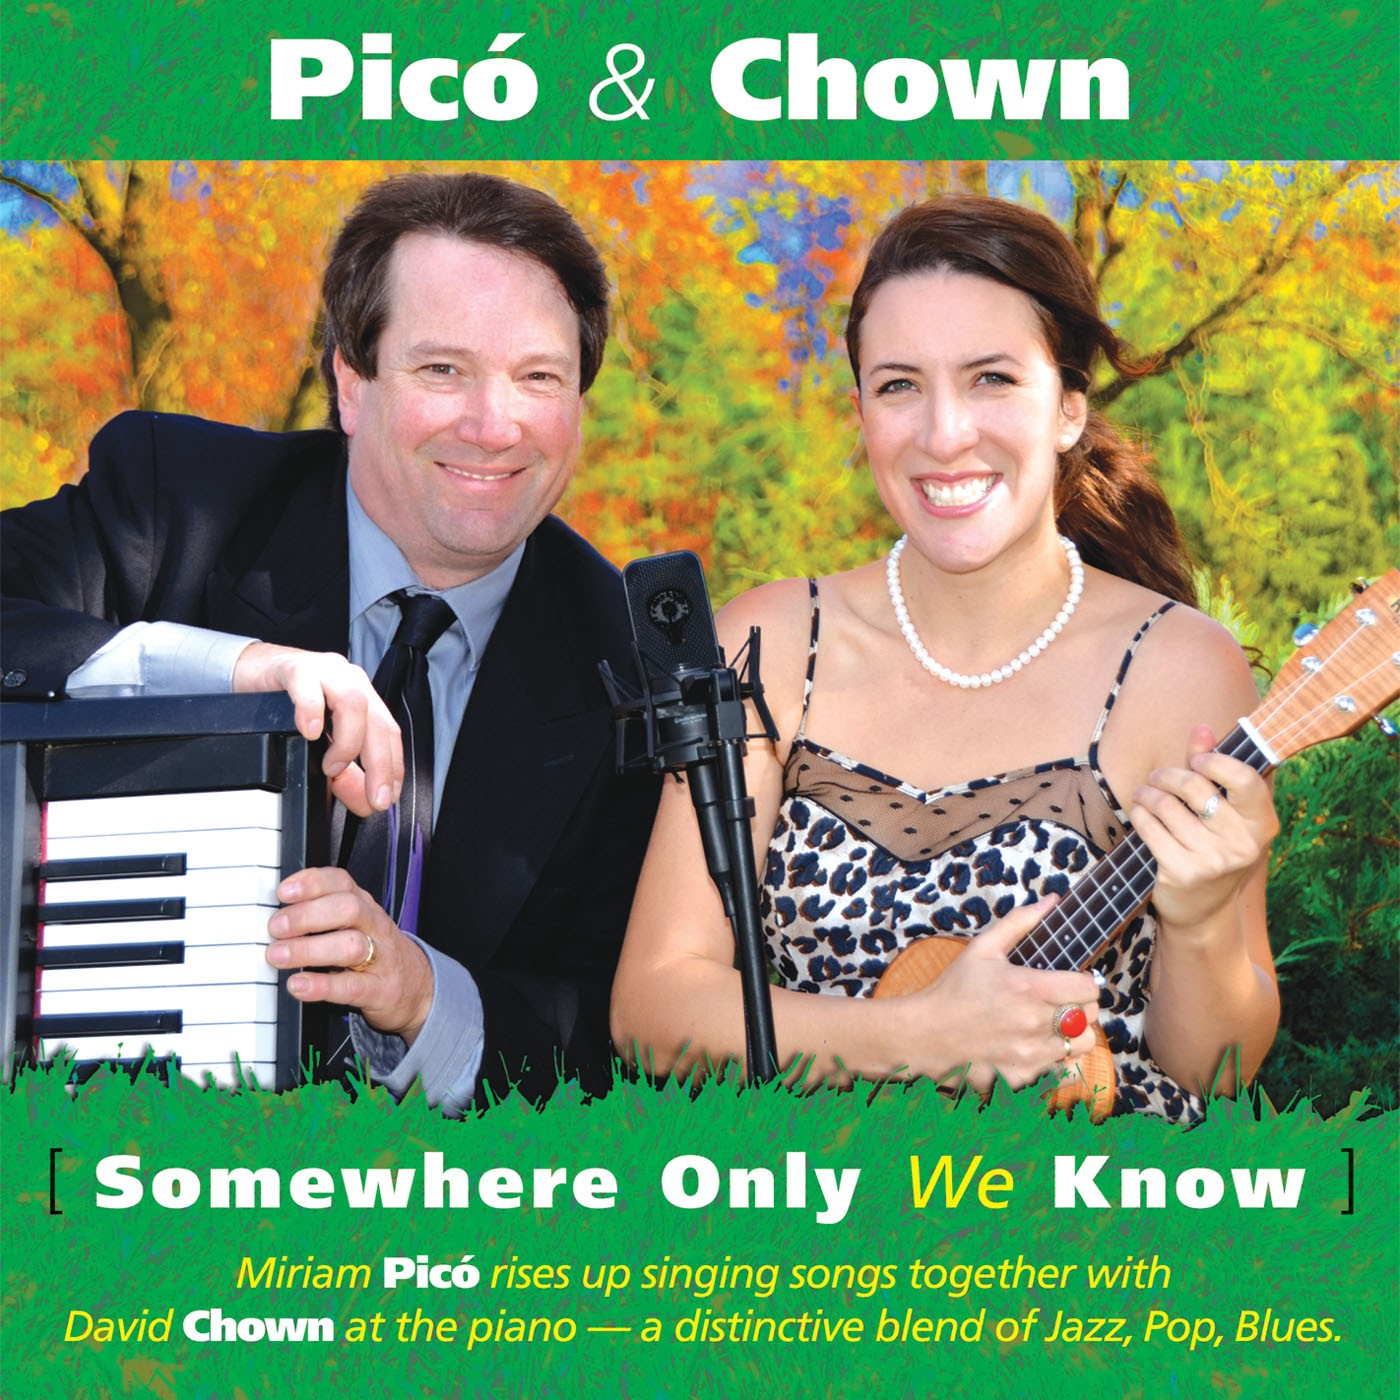 Somewhere Only We Know Picó & Chown